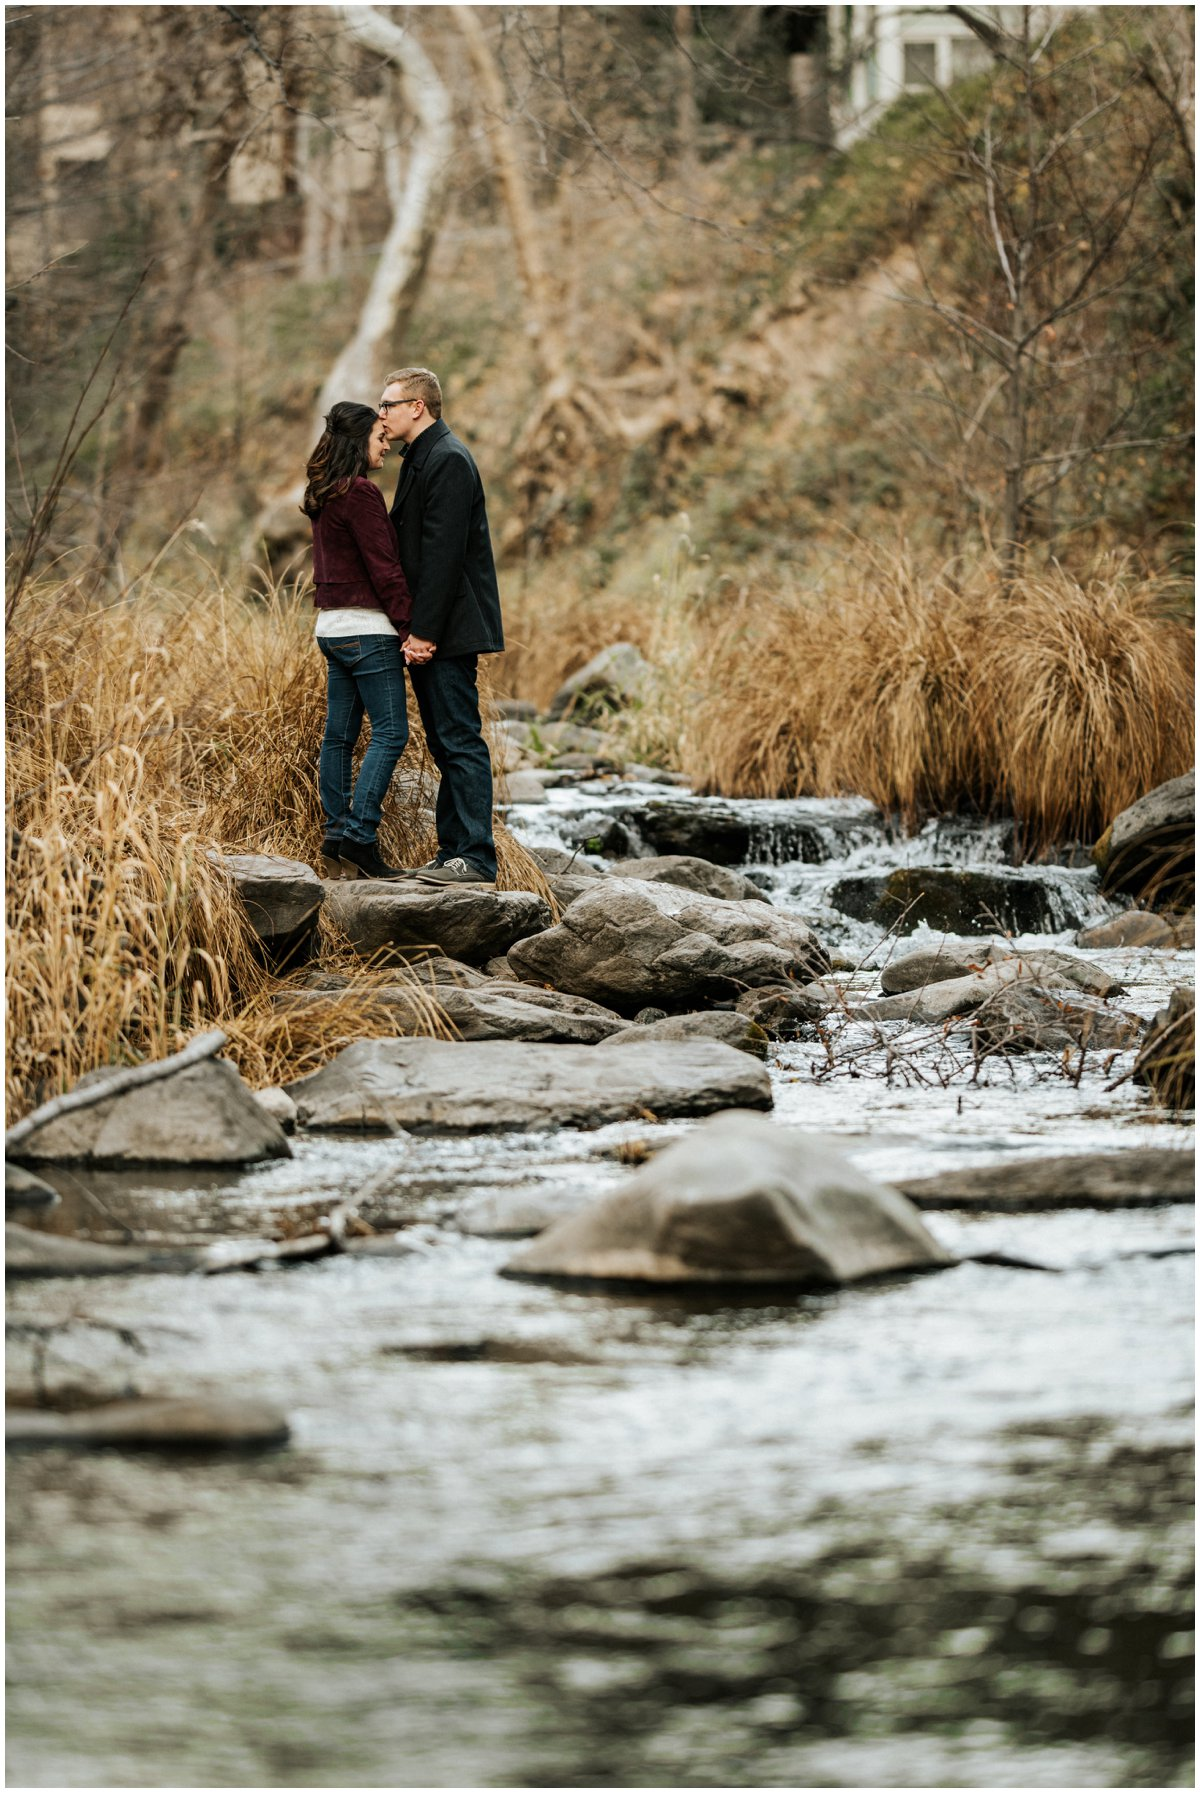 Fun Engagement Photos in Sedona, Arizona during Winter.